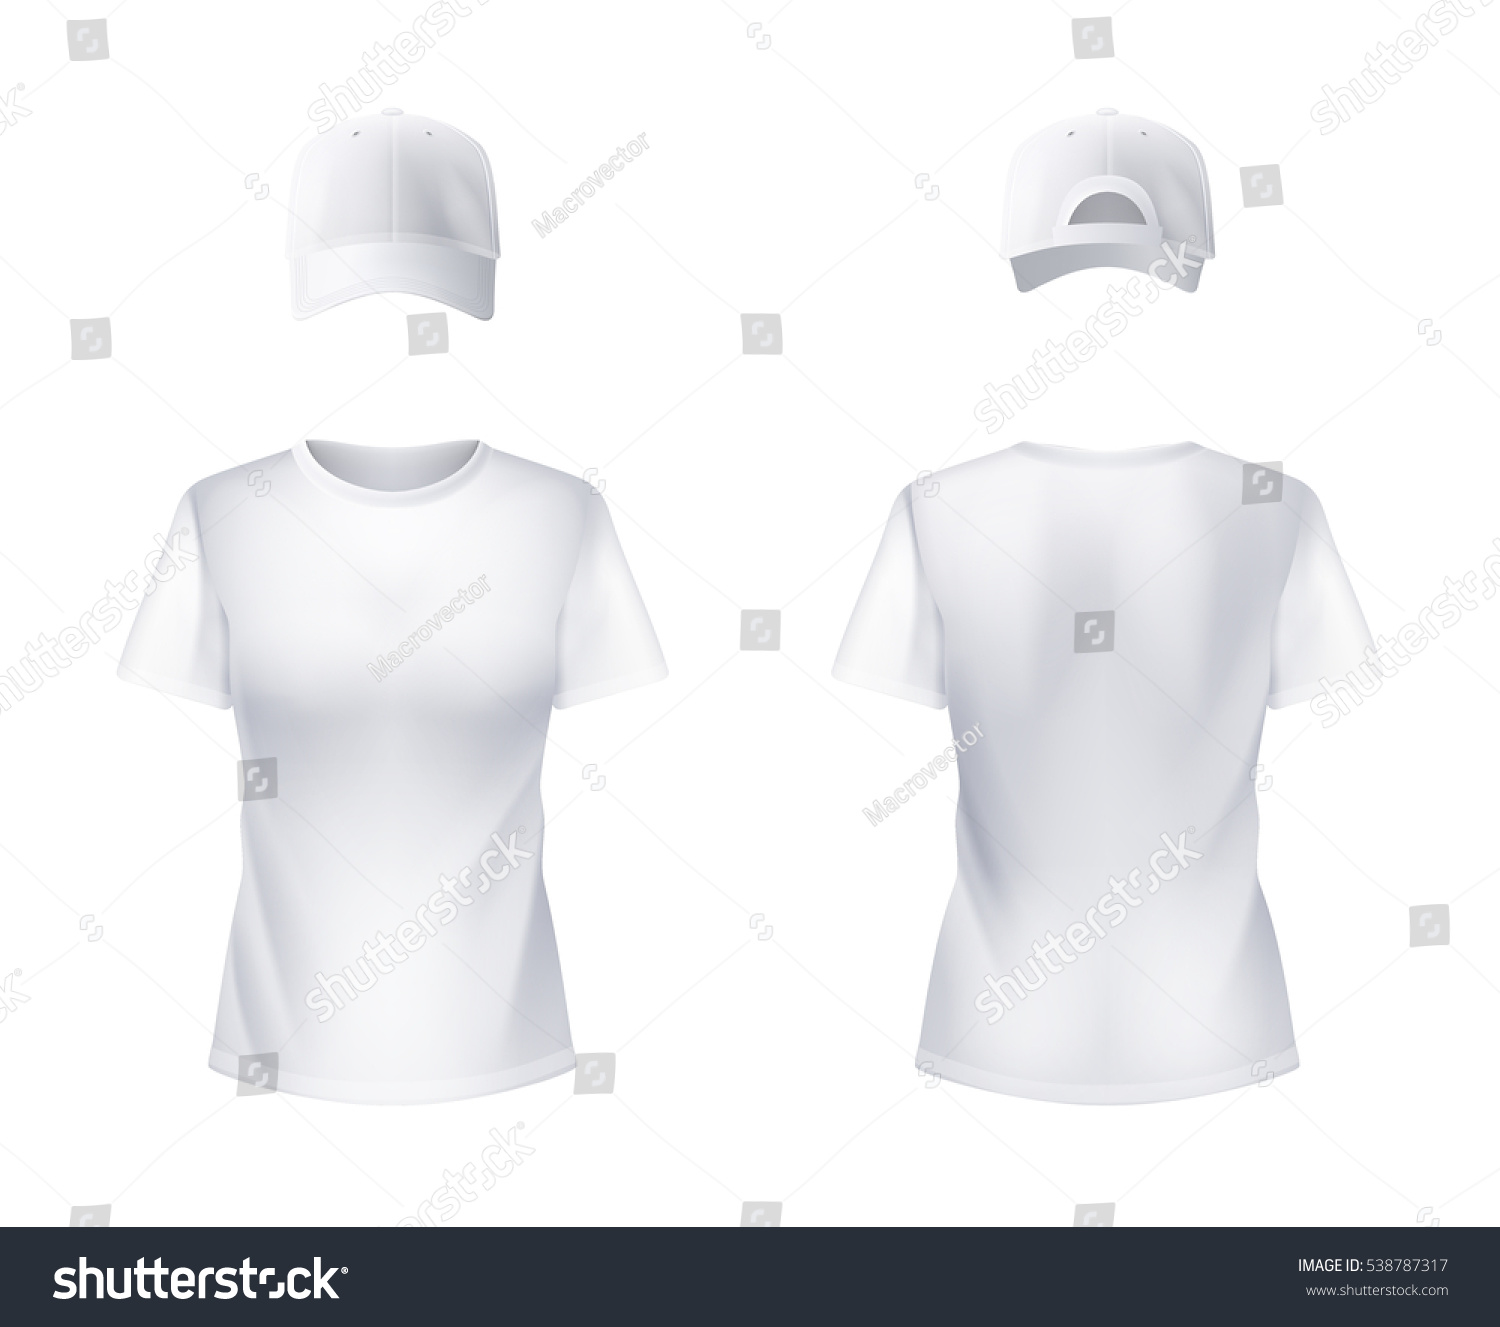 White t shirt for design - White T Shirt And Baseball Cap Front And Back Views Set Realistic Design For Women